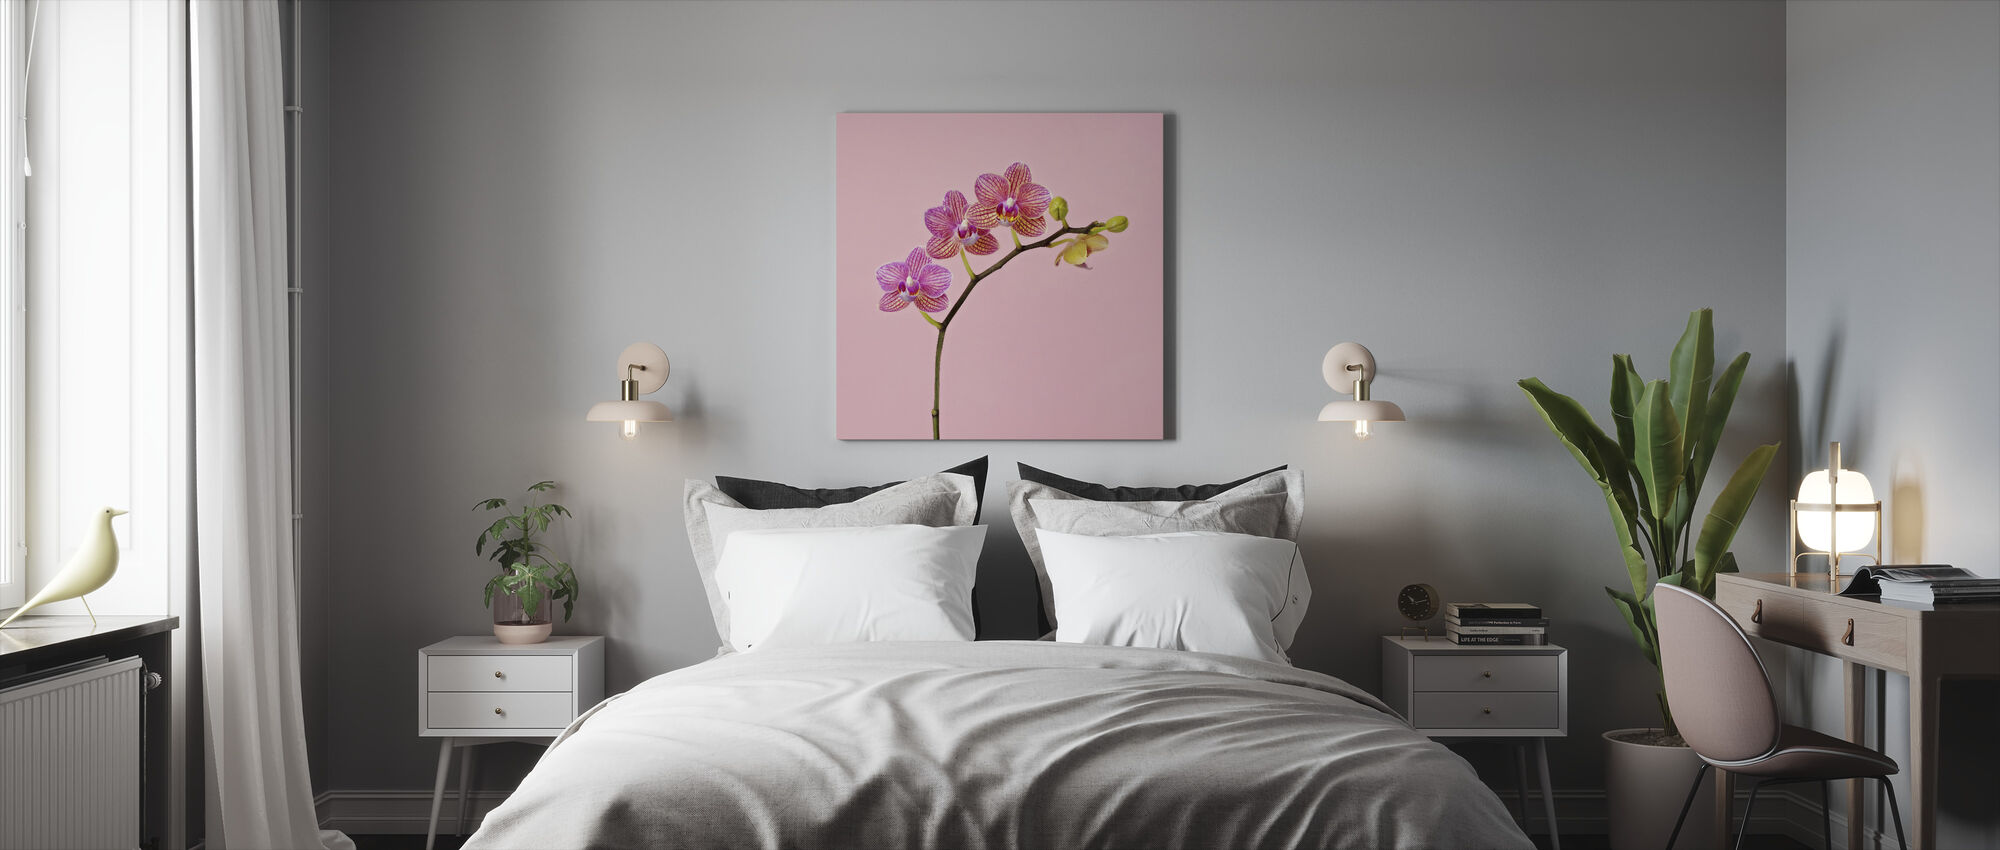 Pink Orchid - Canvas print - Bedroom